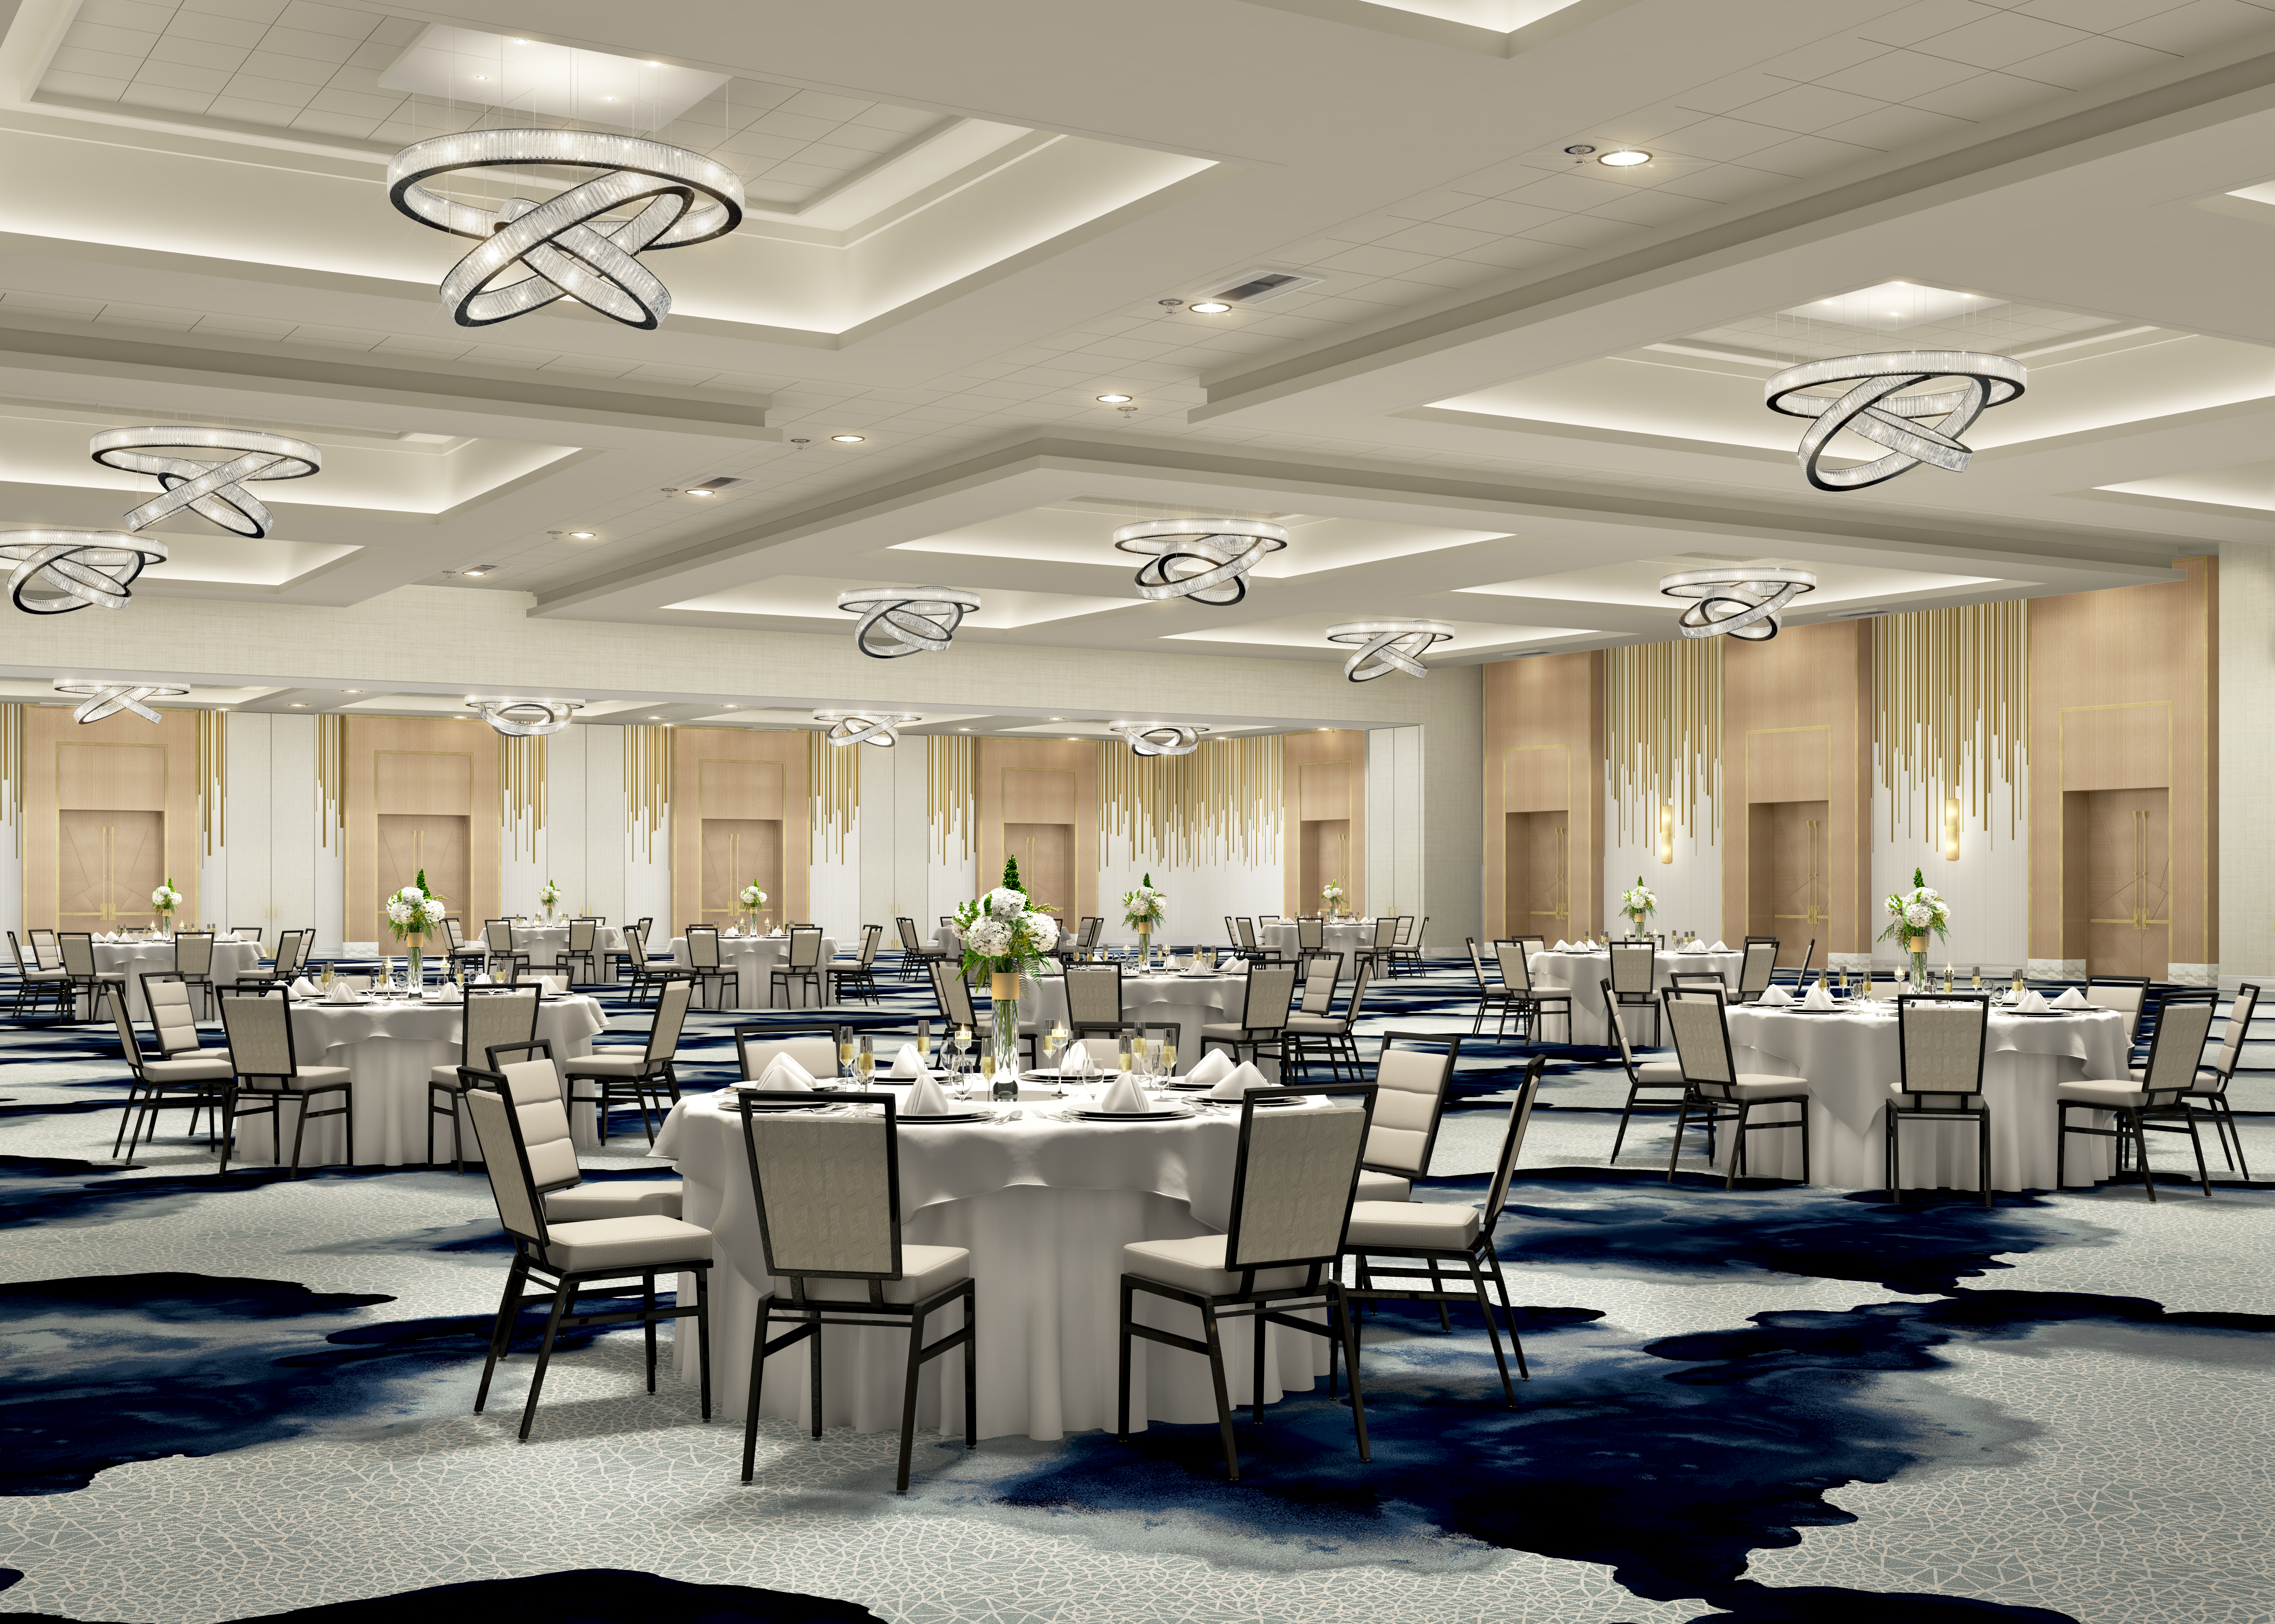 The Sinatra Ballroom is the largest indoor space in the Greater Palm Springs area at 25,000 square feet.